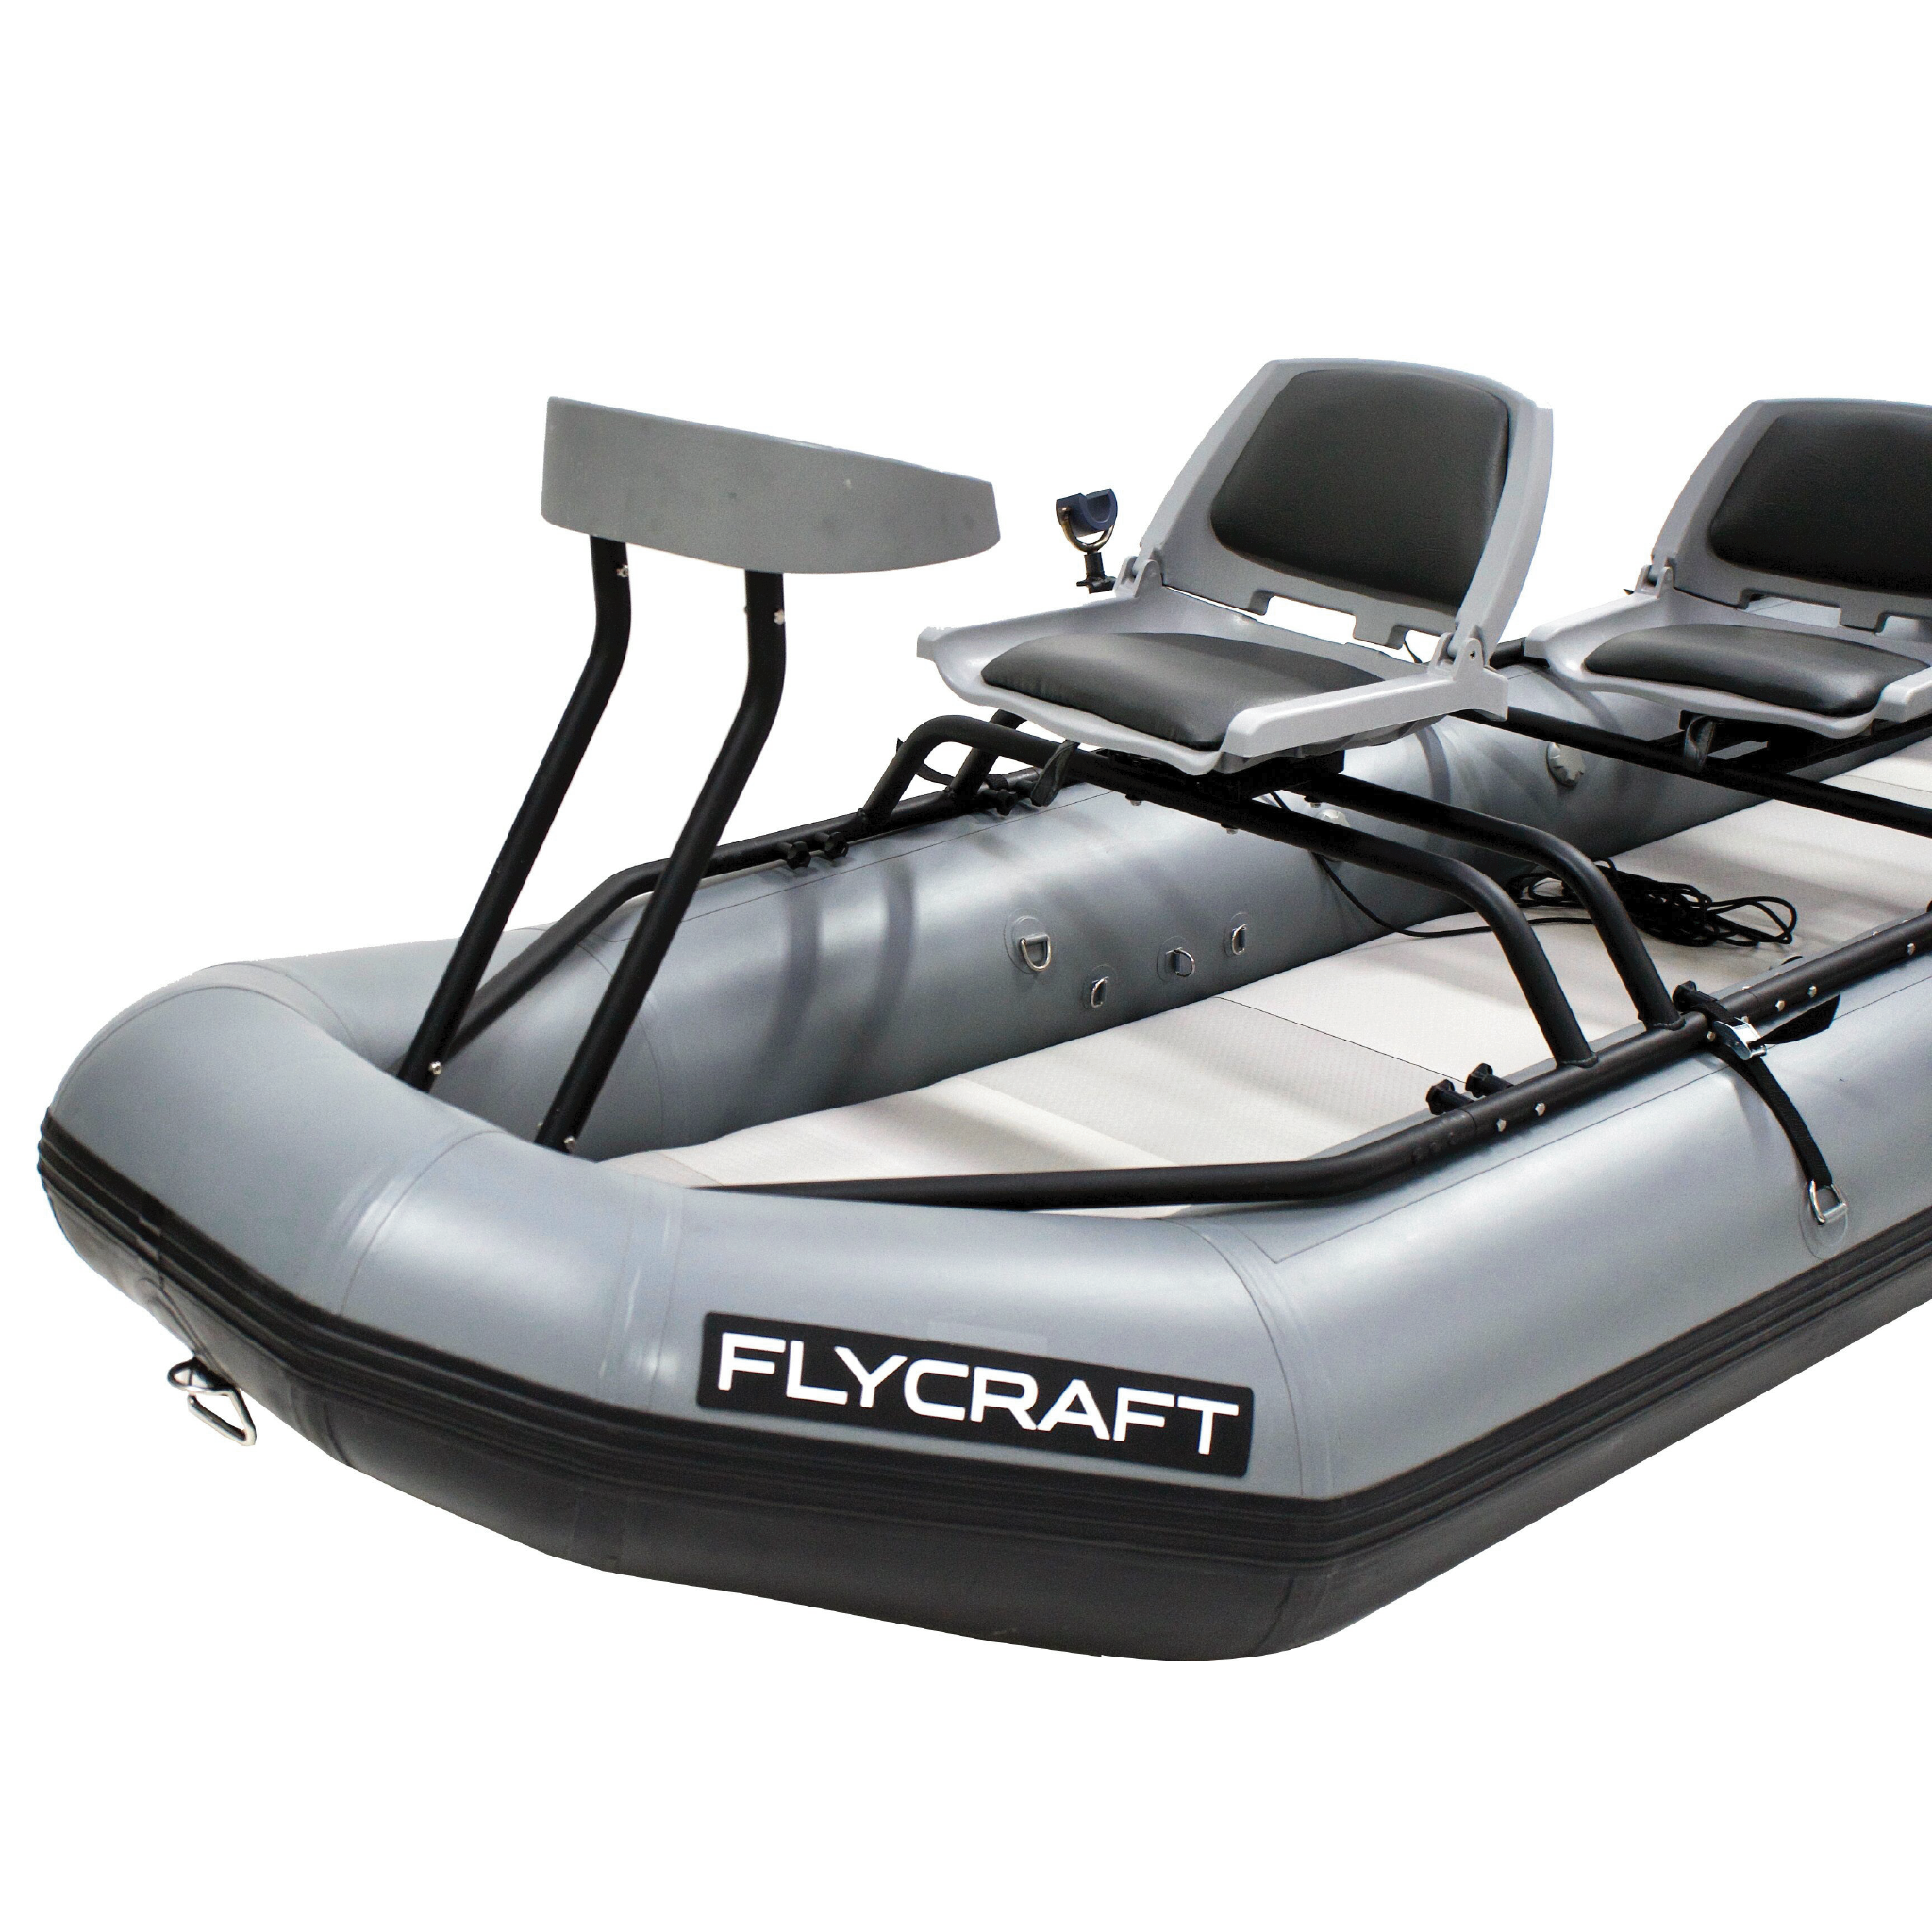 The Flycraft 3 Person Inflatable Boat - 3 Man Raft